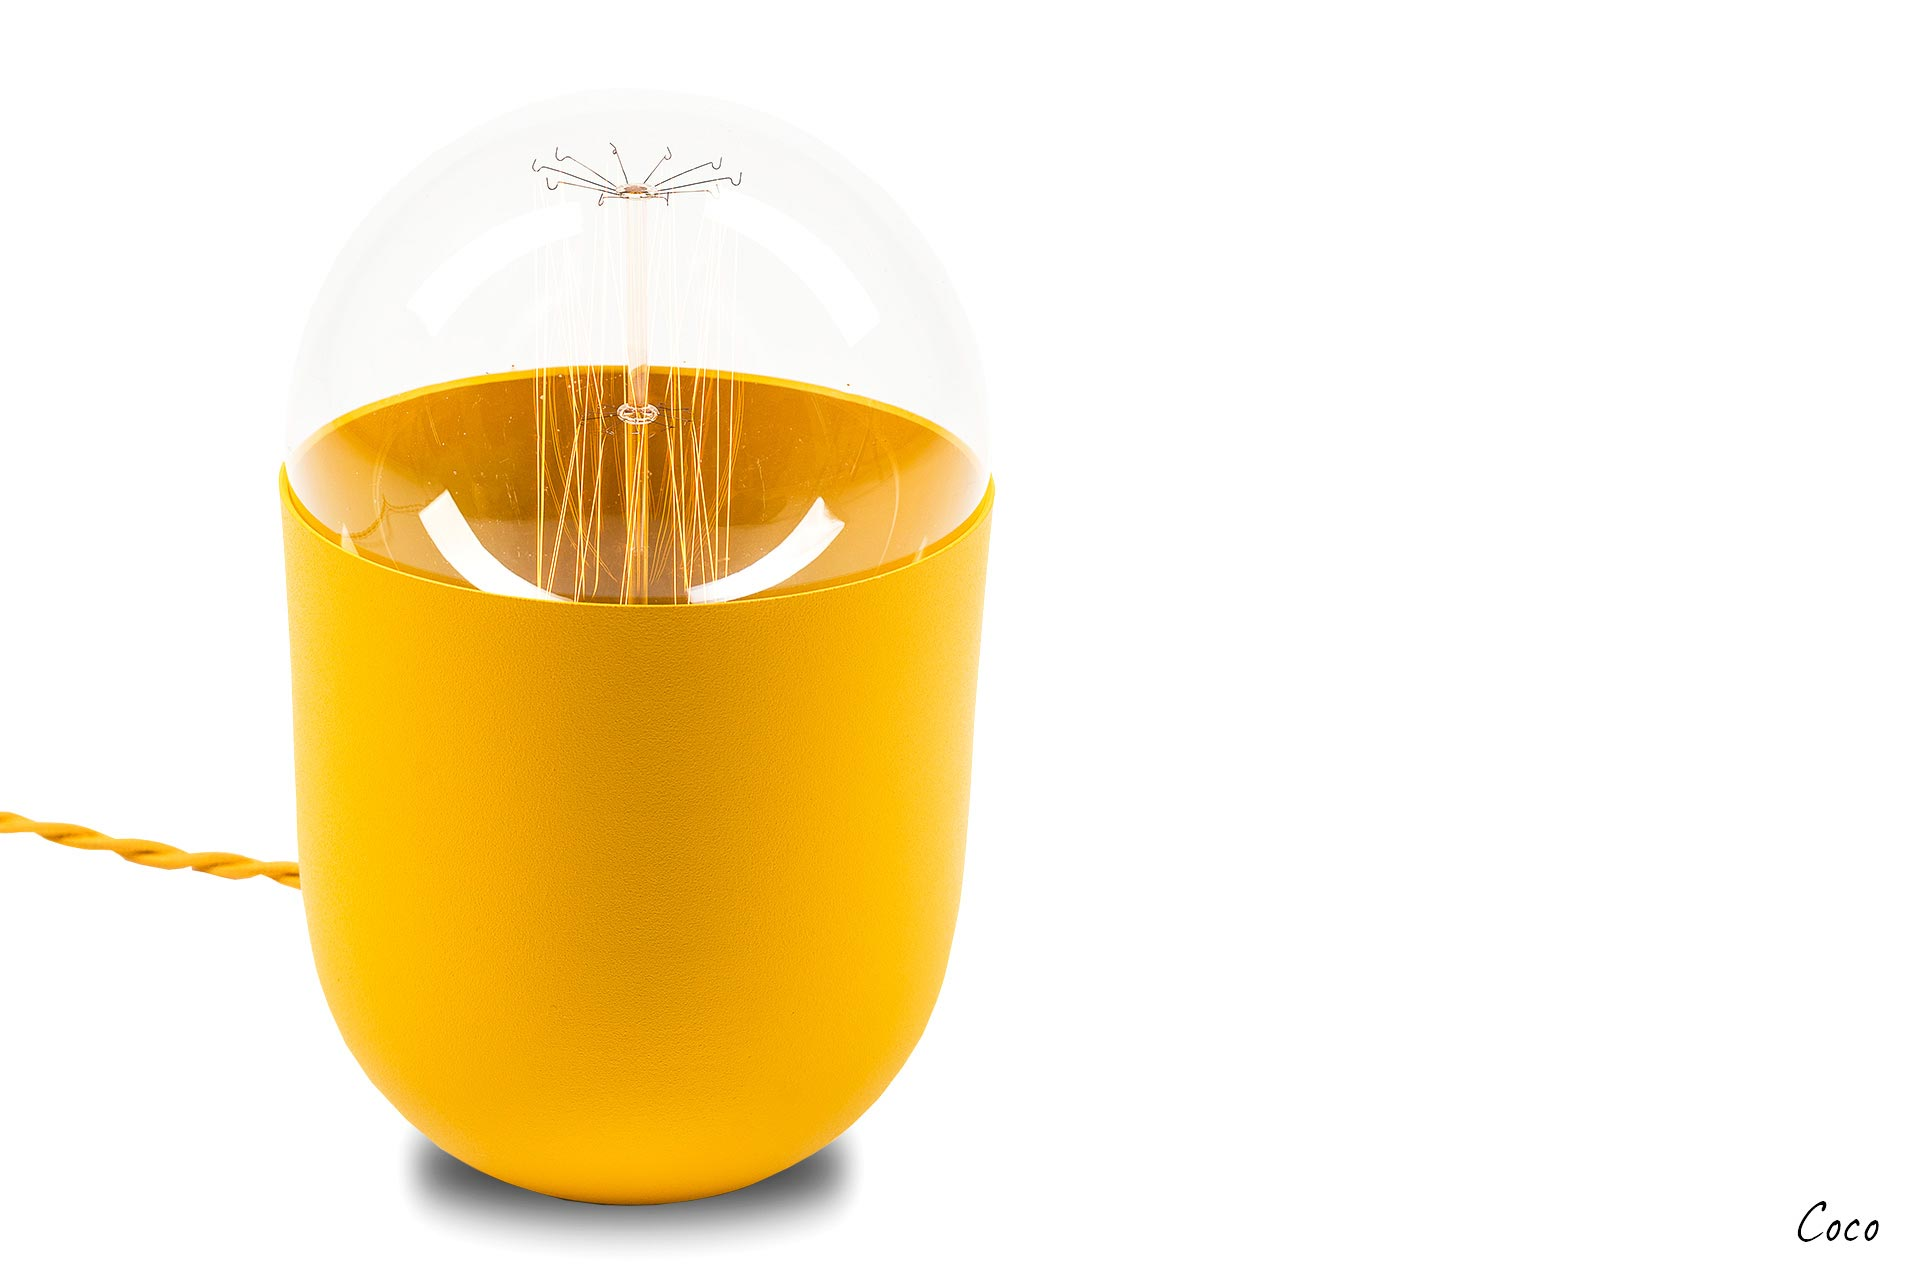 lampe-de-table-Coco-Méditerranée-by-Koska-PARIDEO-design-durable